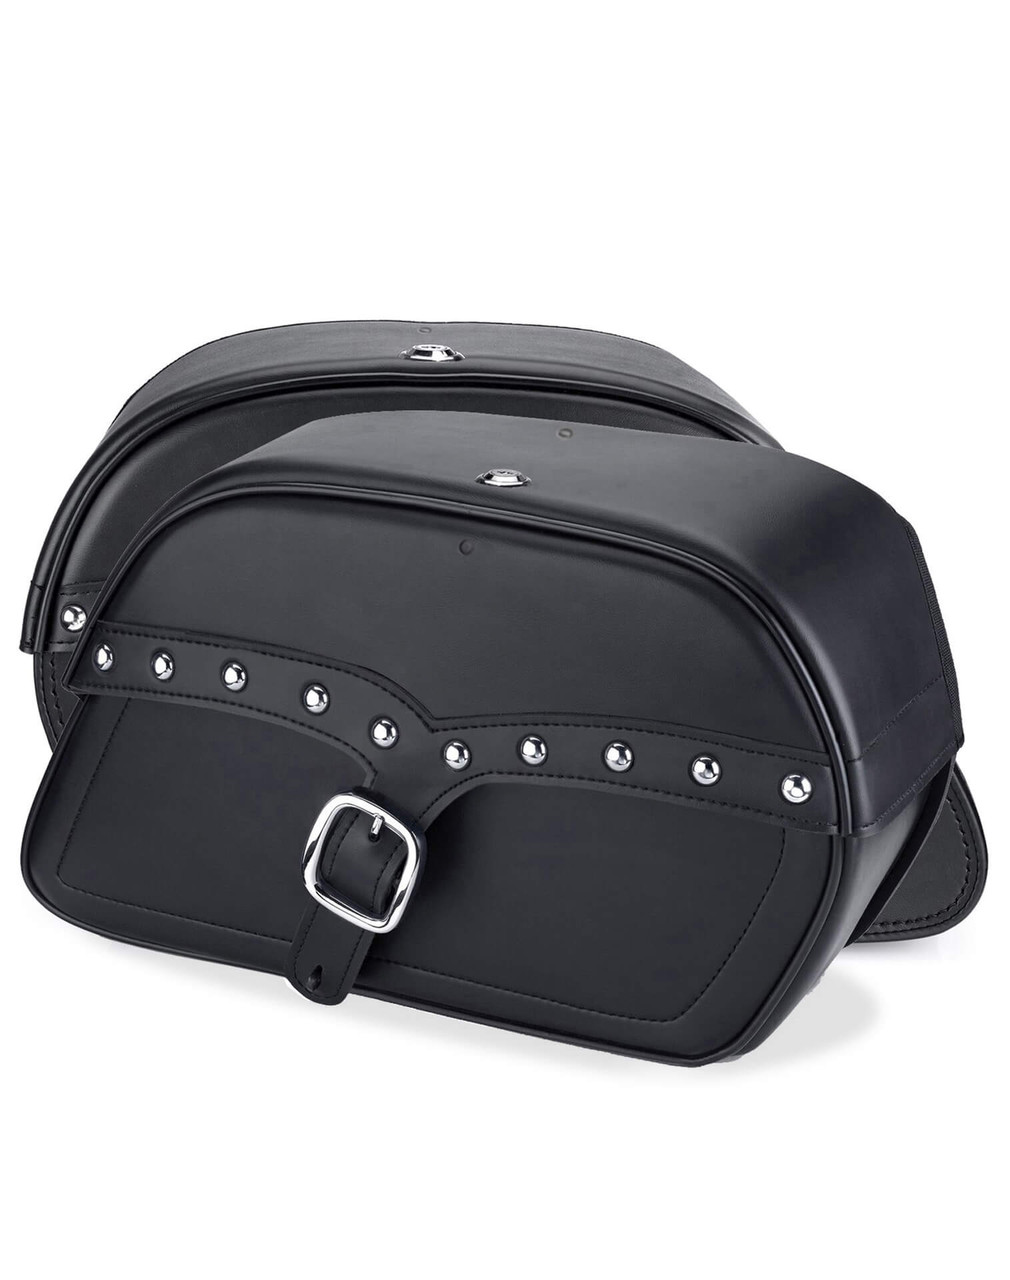 viking-ss-large-shock-cutout-slanted-studded-motorcycle-saddlebags-for-harley-sportster-iron-1200 Both Bags View